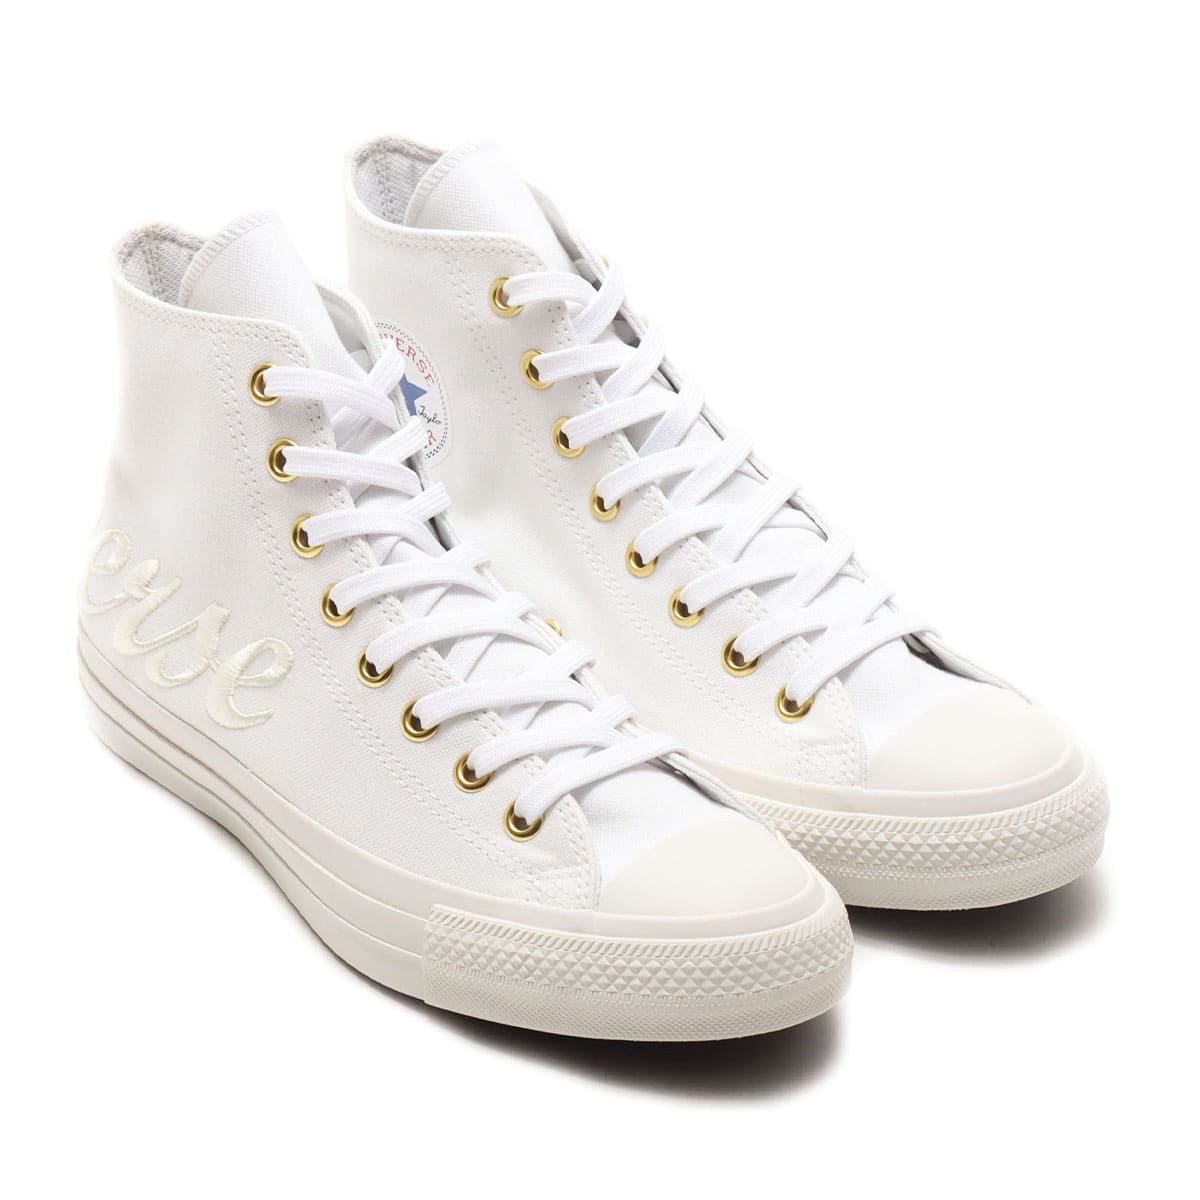 CONVERSE ALL STAR 100 LOGOEMBROIDERY G HI WHITE 20FW-I_photo_large